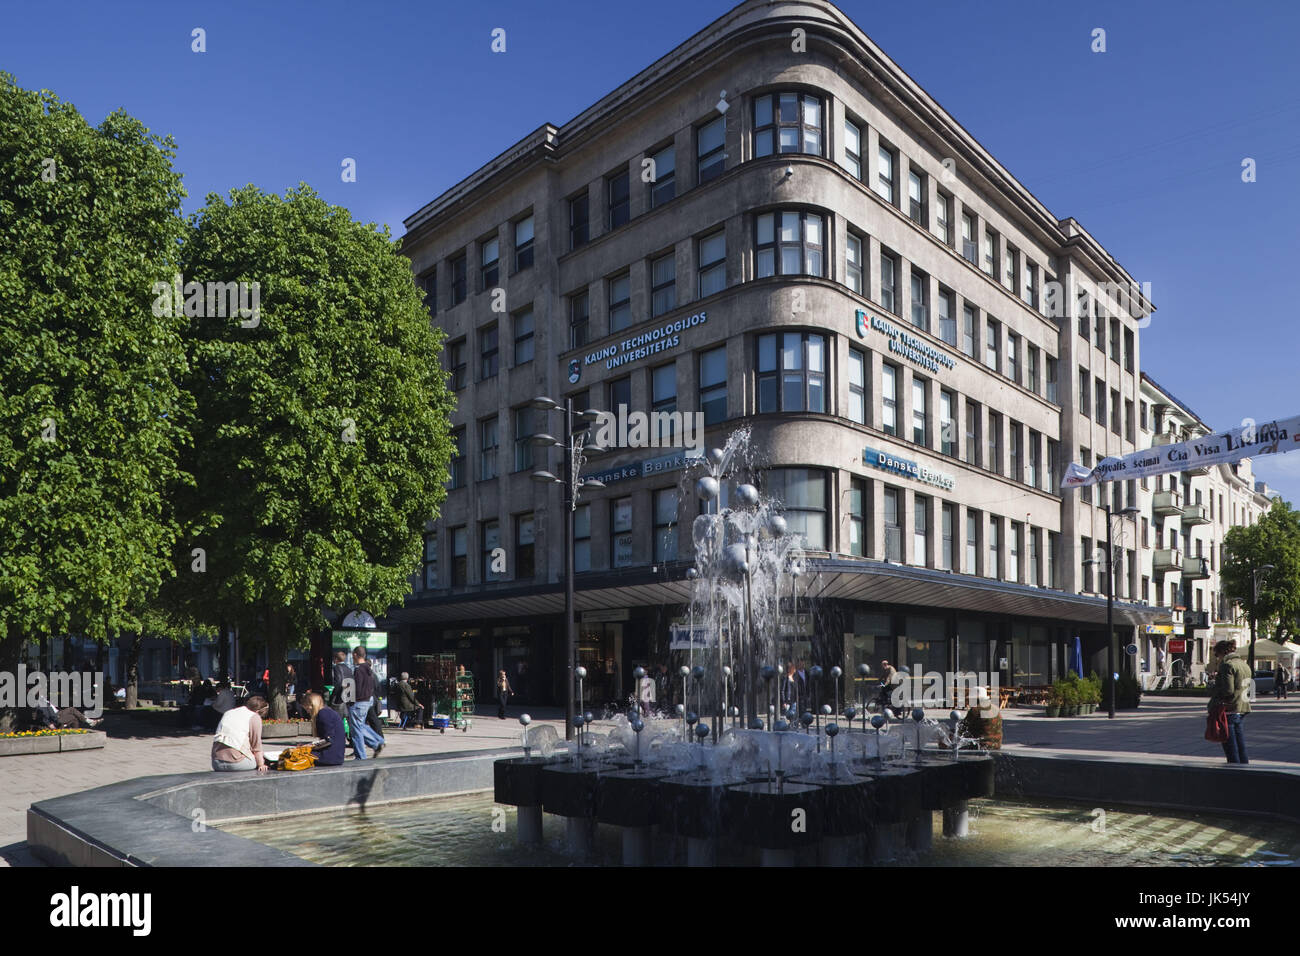 Lithuania, Central Lithuania, Kaunas, Laisves aleja street, fountain - Stock Image